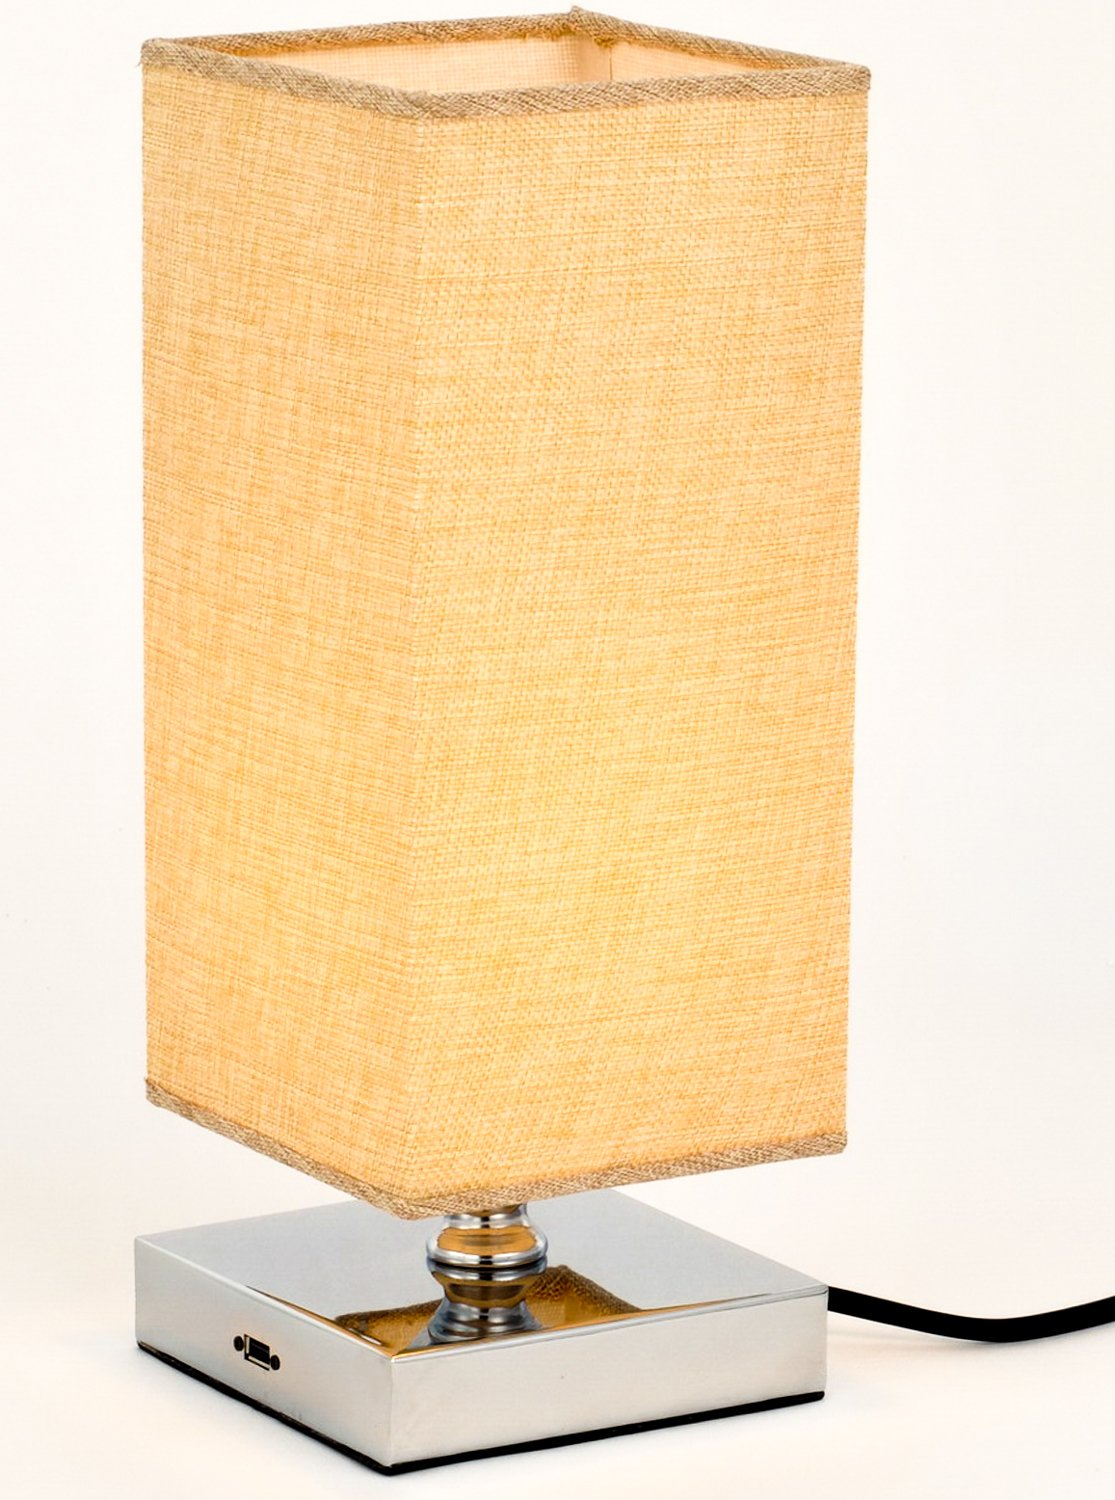 Bedside lamp with usb portawesome table lamp design best for Daylight floor lamp john lewis